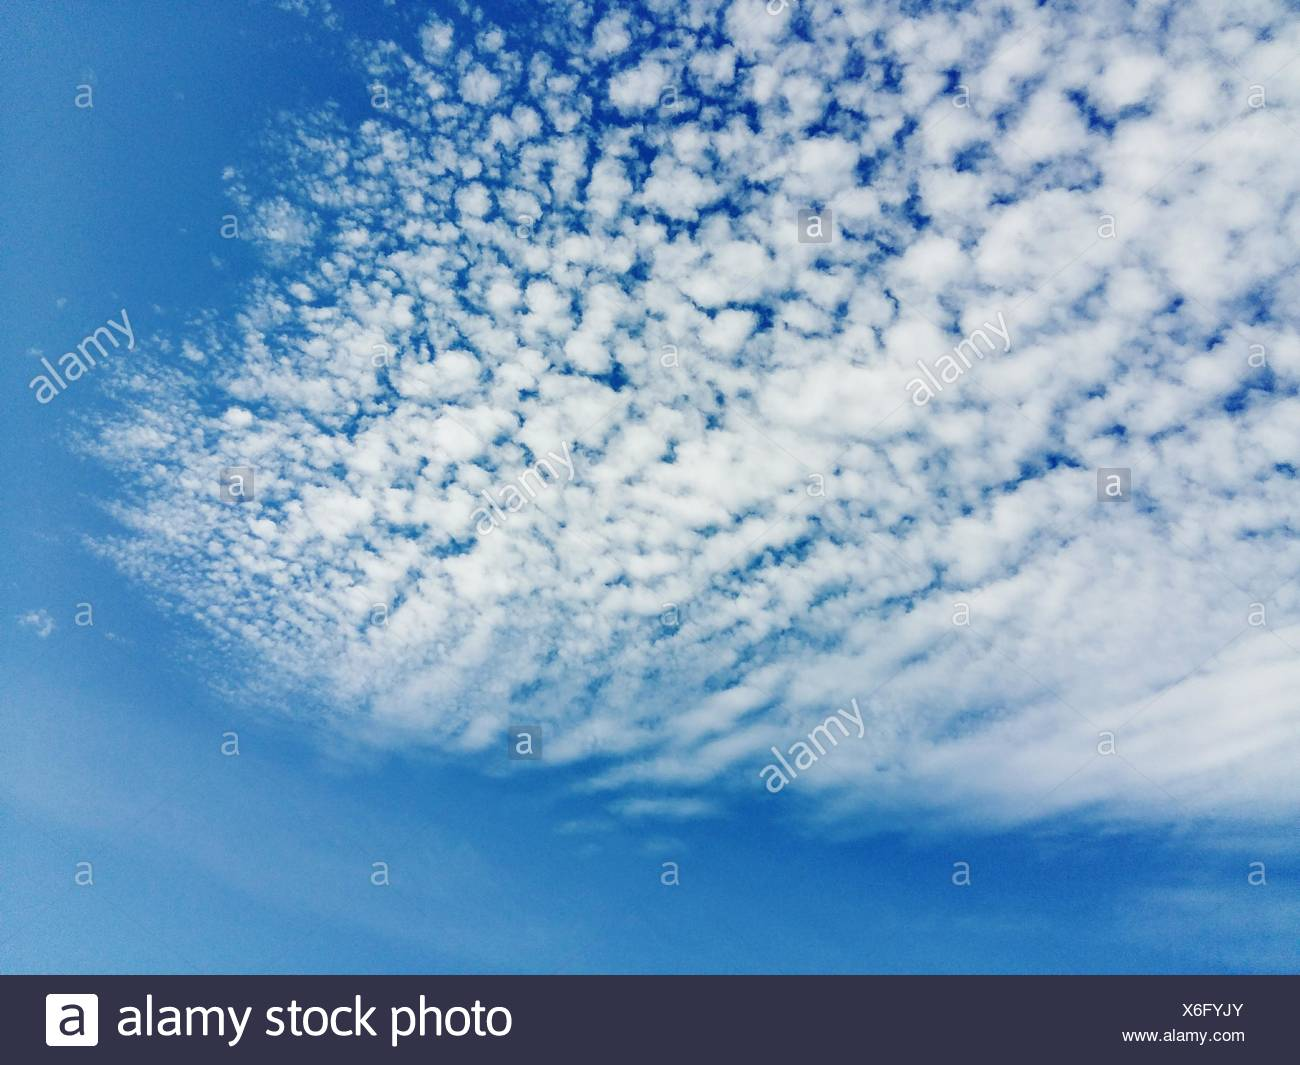 Low Angle View Of Cloudy Sky Stock Photo